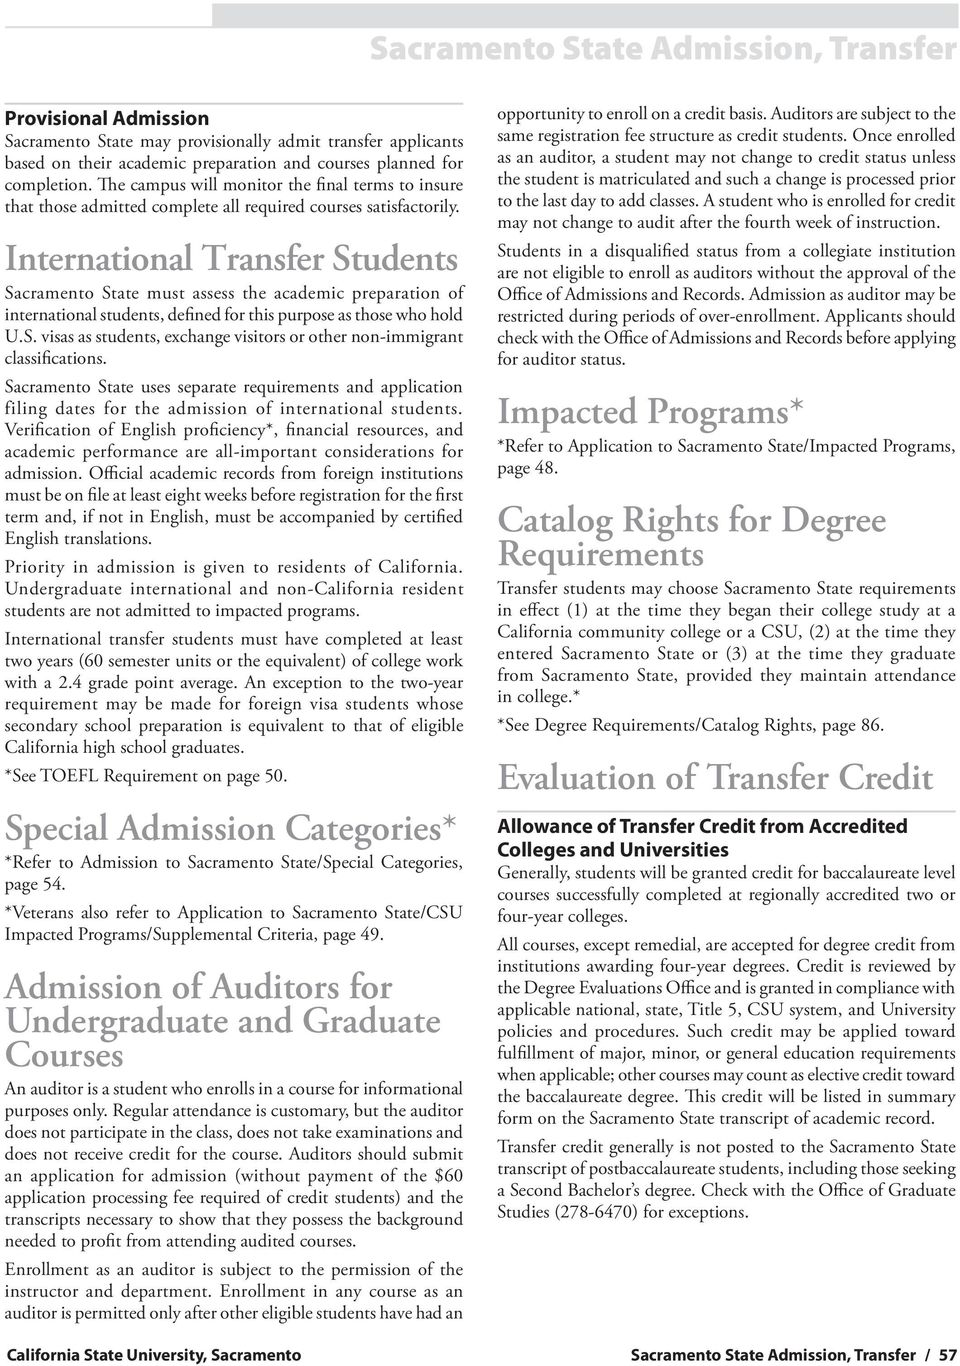 International Transfer Students Sacramento State must assess the academic preparation of international students, defined for this purpose as those who hold U.S. visas as students, exchange visitors or other non-immigrant classifications.